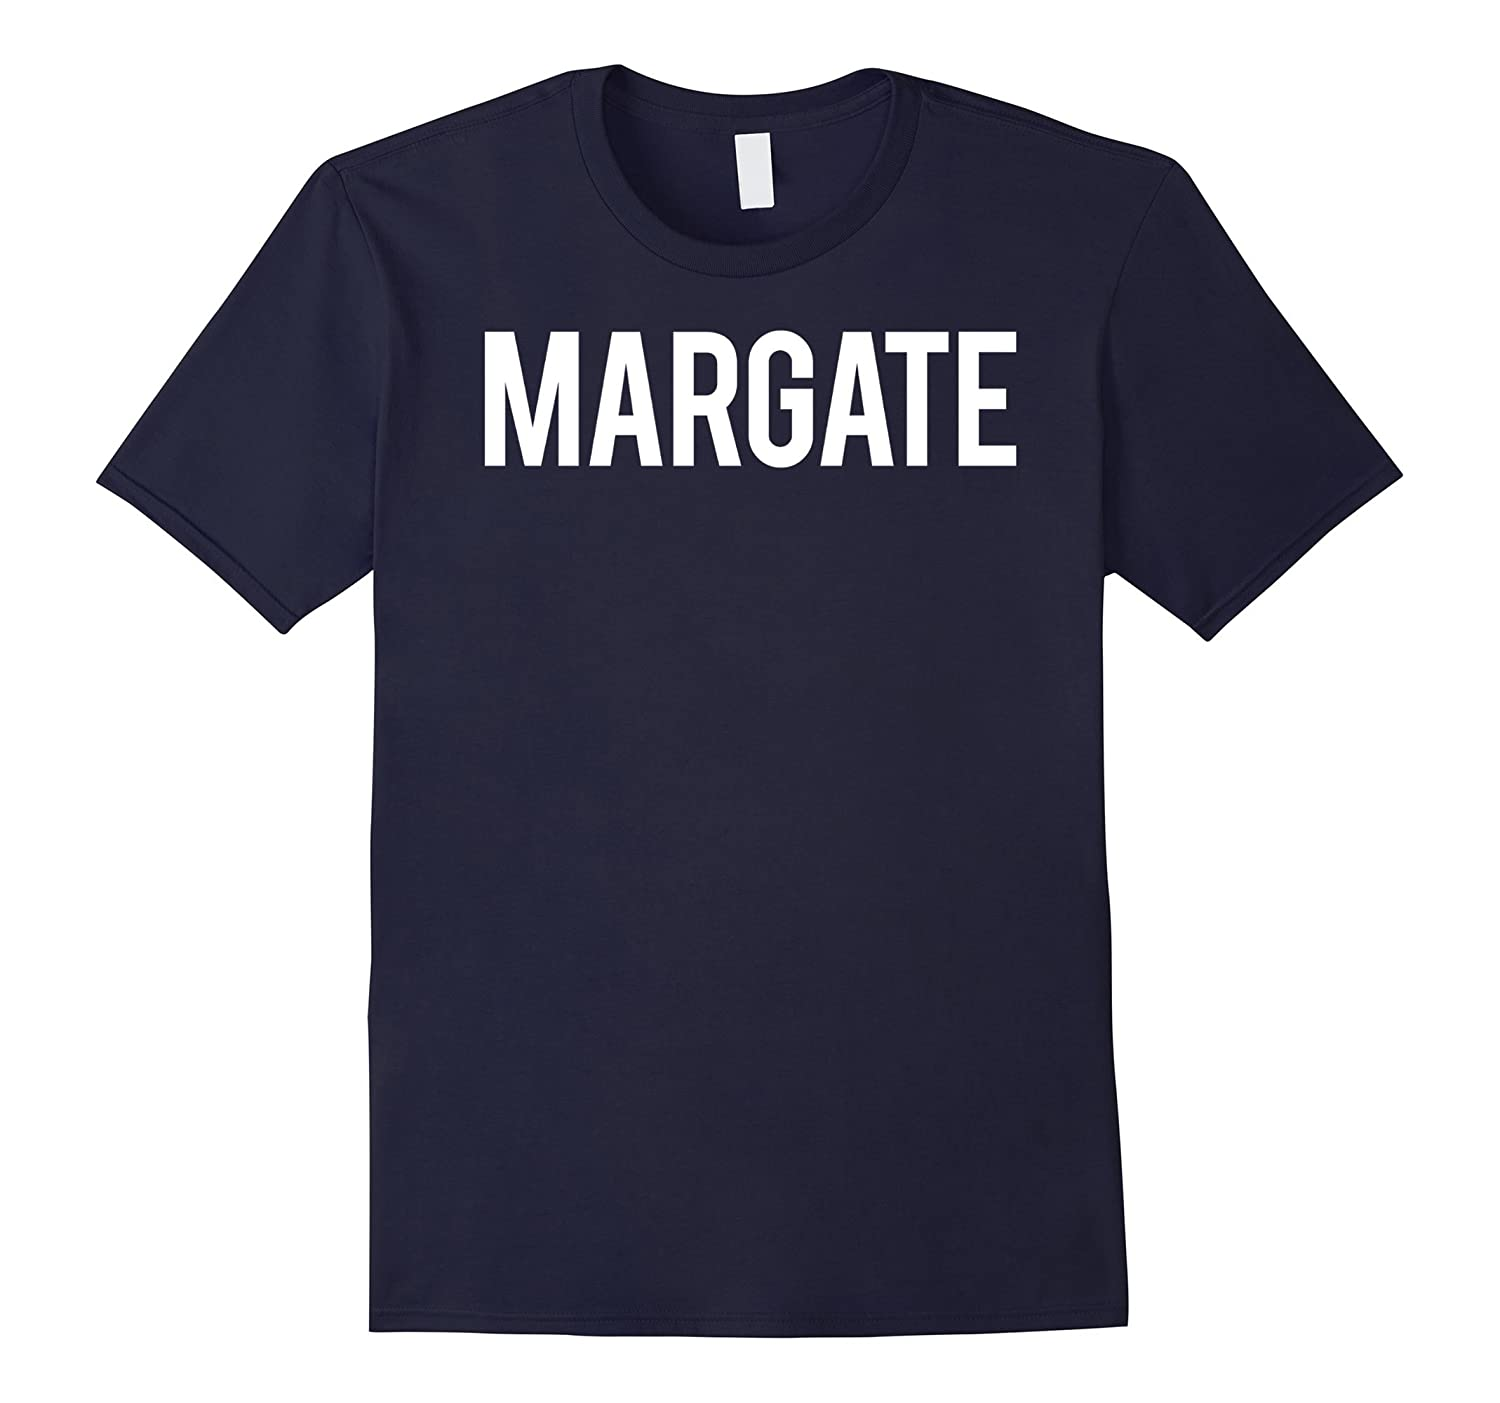 Margate T Shirt Cool Florida FL city funny cheap gift tee